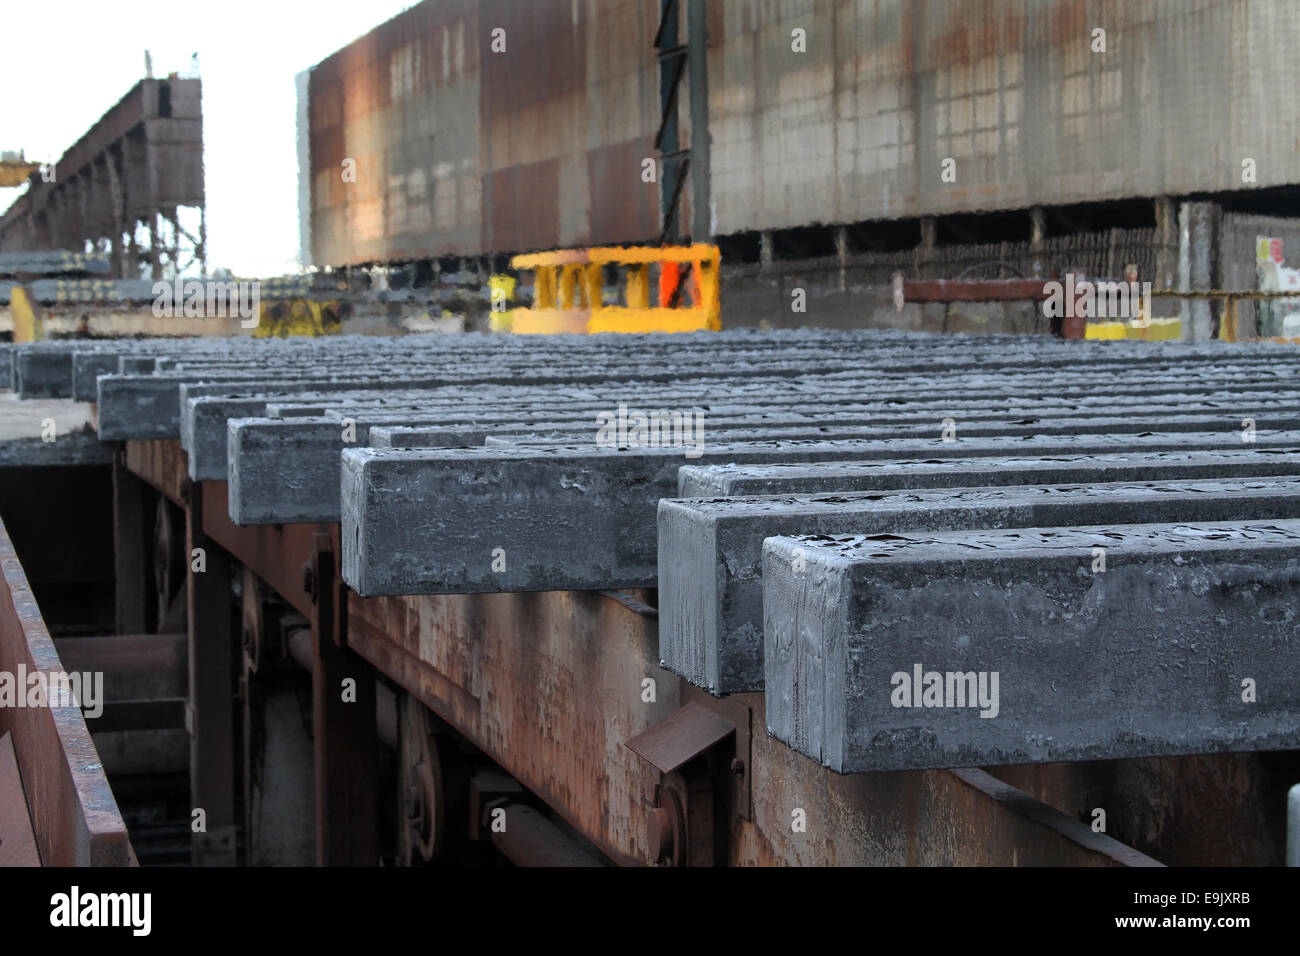 Hot steel bars from continuous casting machine on cooling bank. - Stock Image